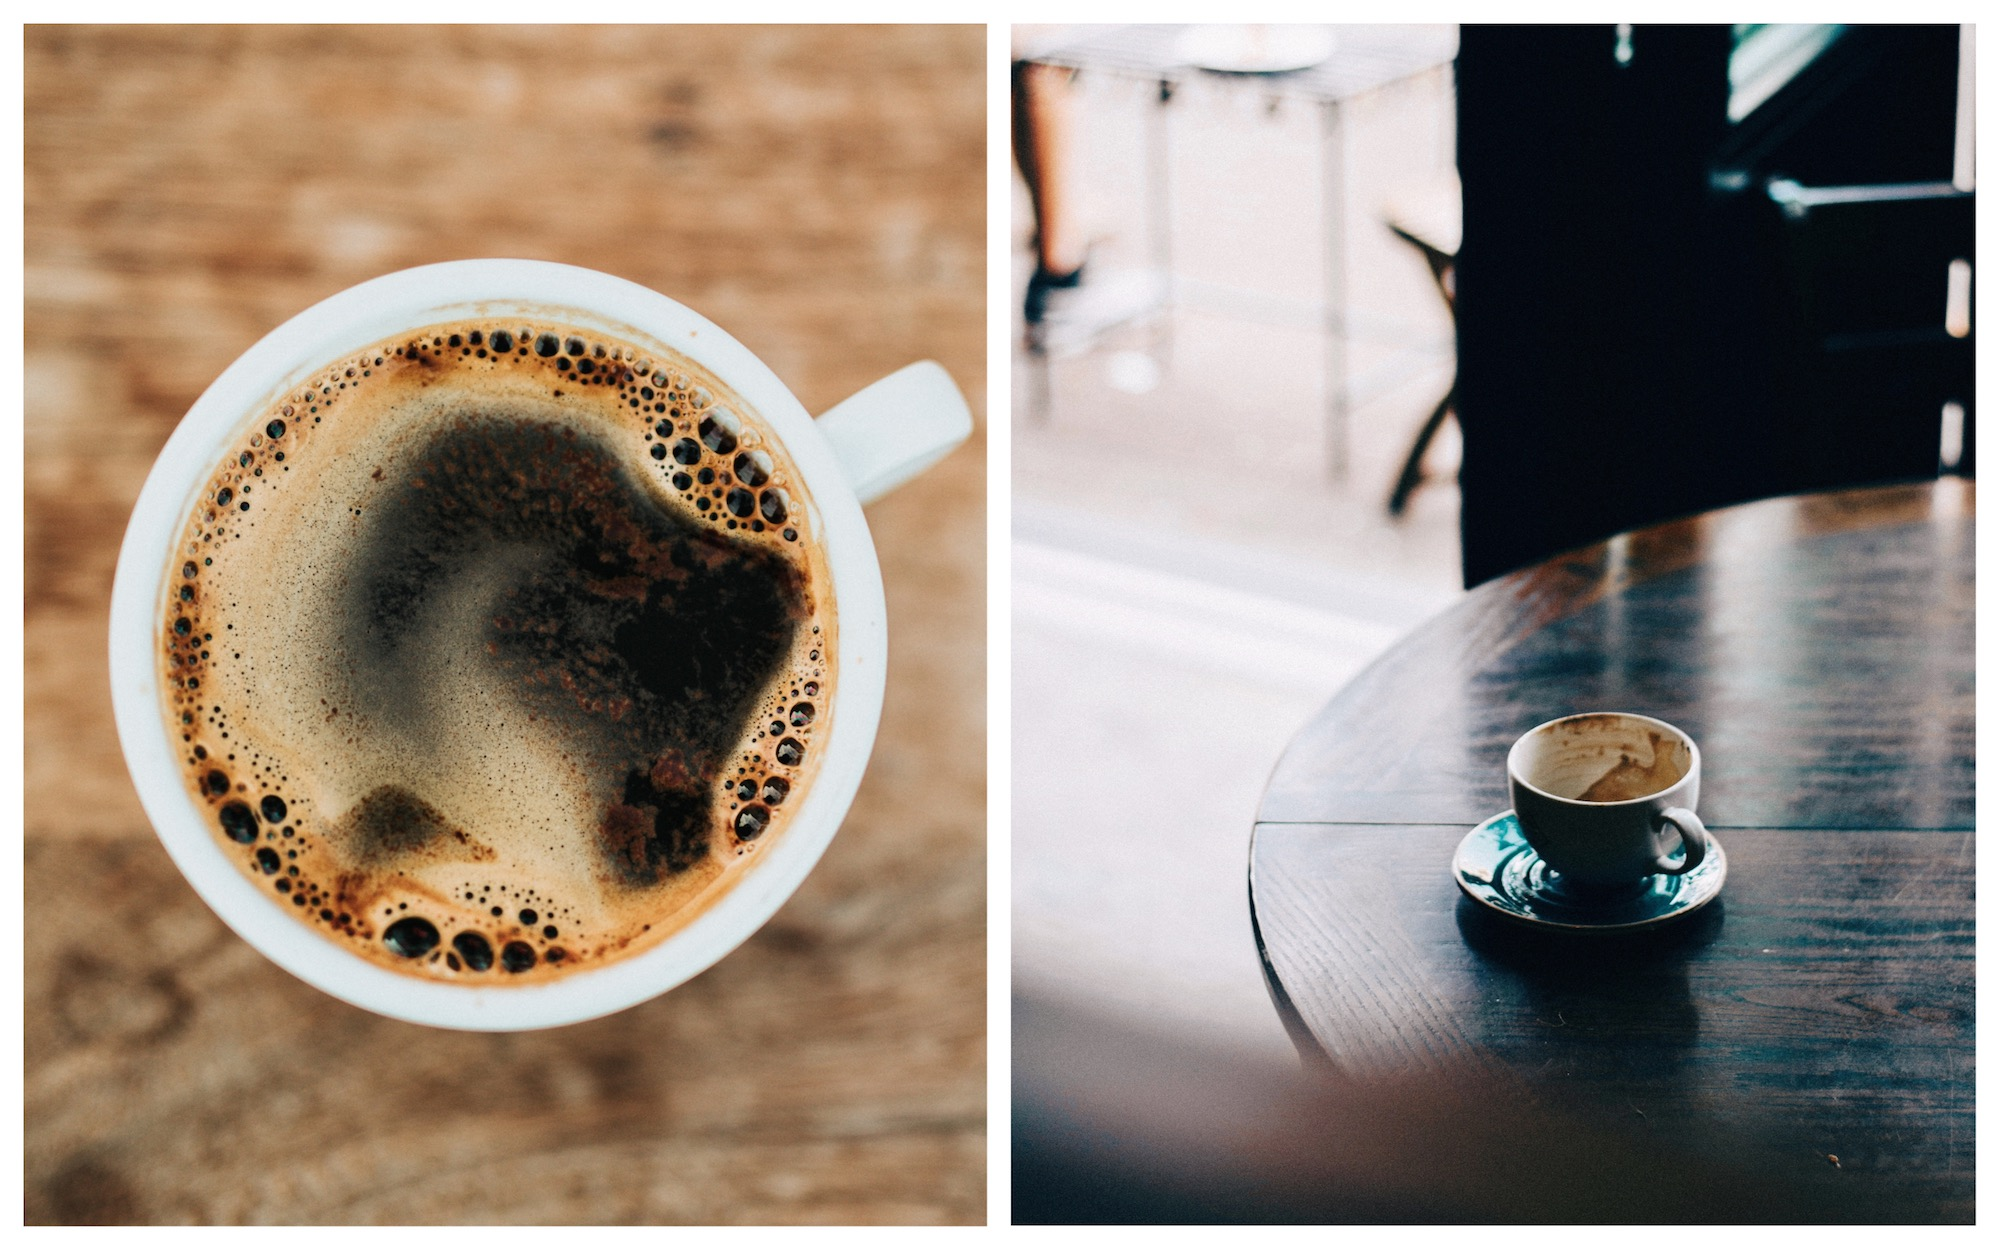 A top shot of a cup of coffee sitting on a wooden counter (left). And an empty of coffee sitting on a wooden table at a café in Paris (right).